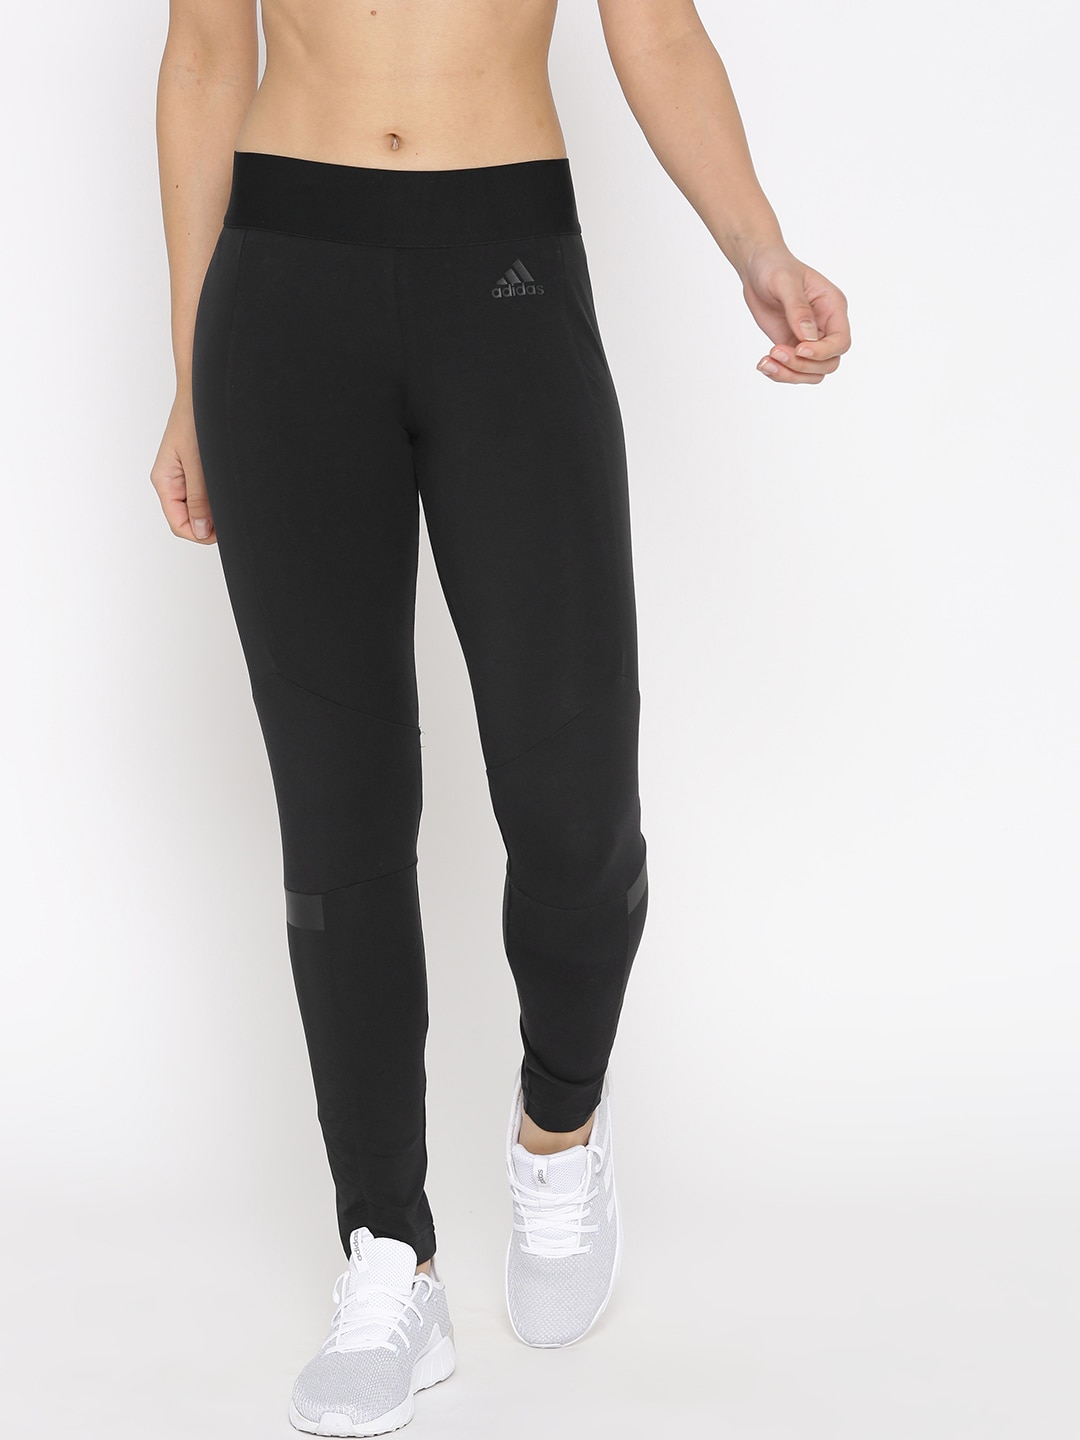 7ab44208cce Adidas Sunglasses Tracksuits Tights Sweaters - Buy Adidas Sunglasses  Tracksuits Tights Sweaters online in India